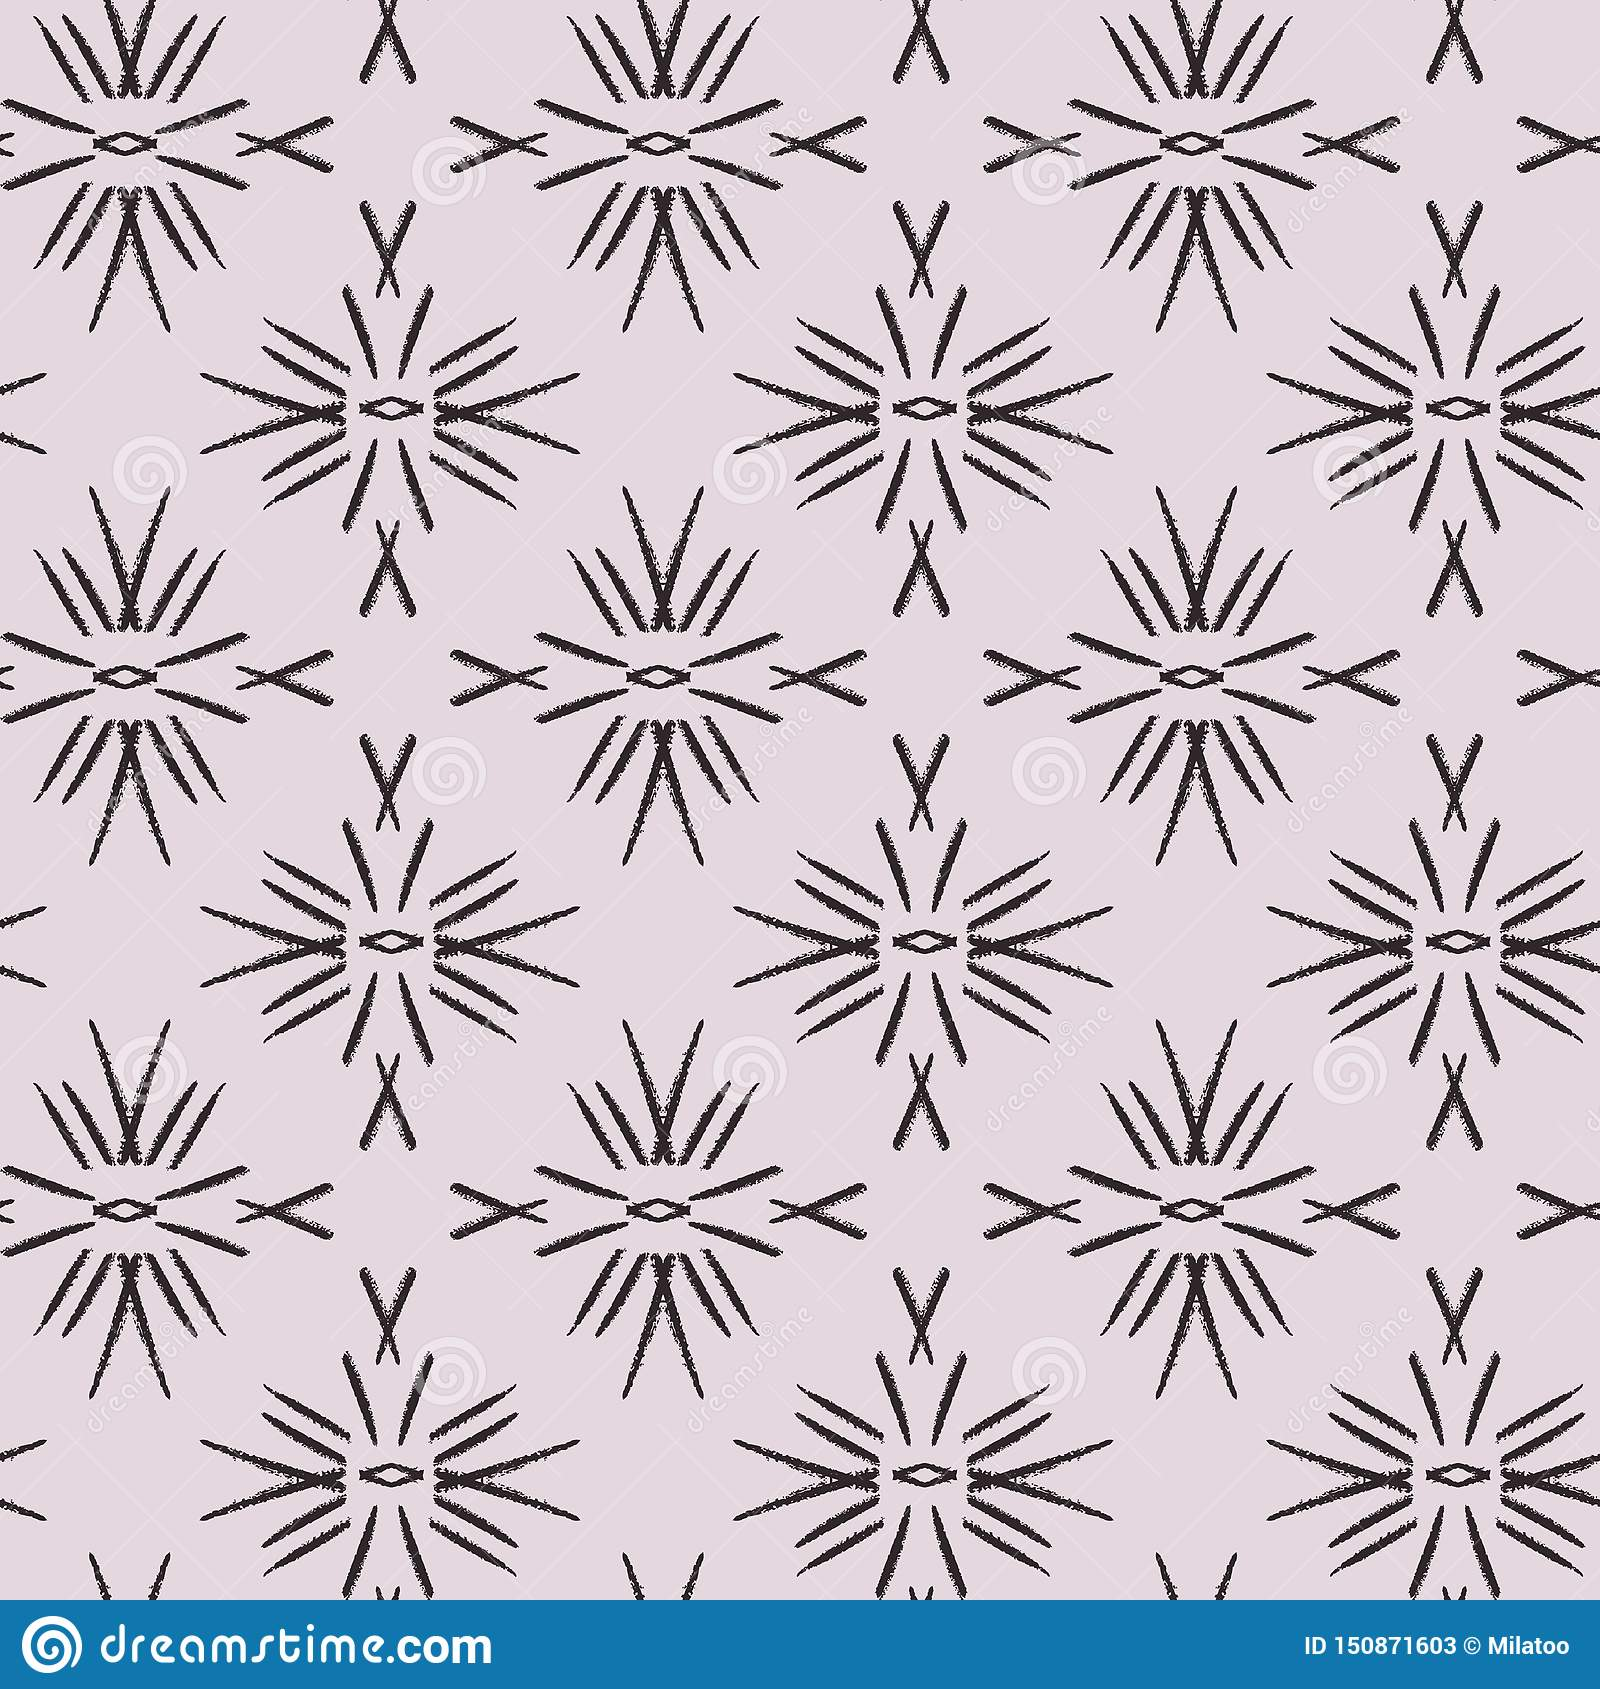 Wondrous Modern Tile Stylish Abstract Illustration With Simple Lines Interior Design Ideas Inamawefileorg